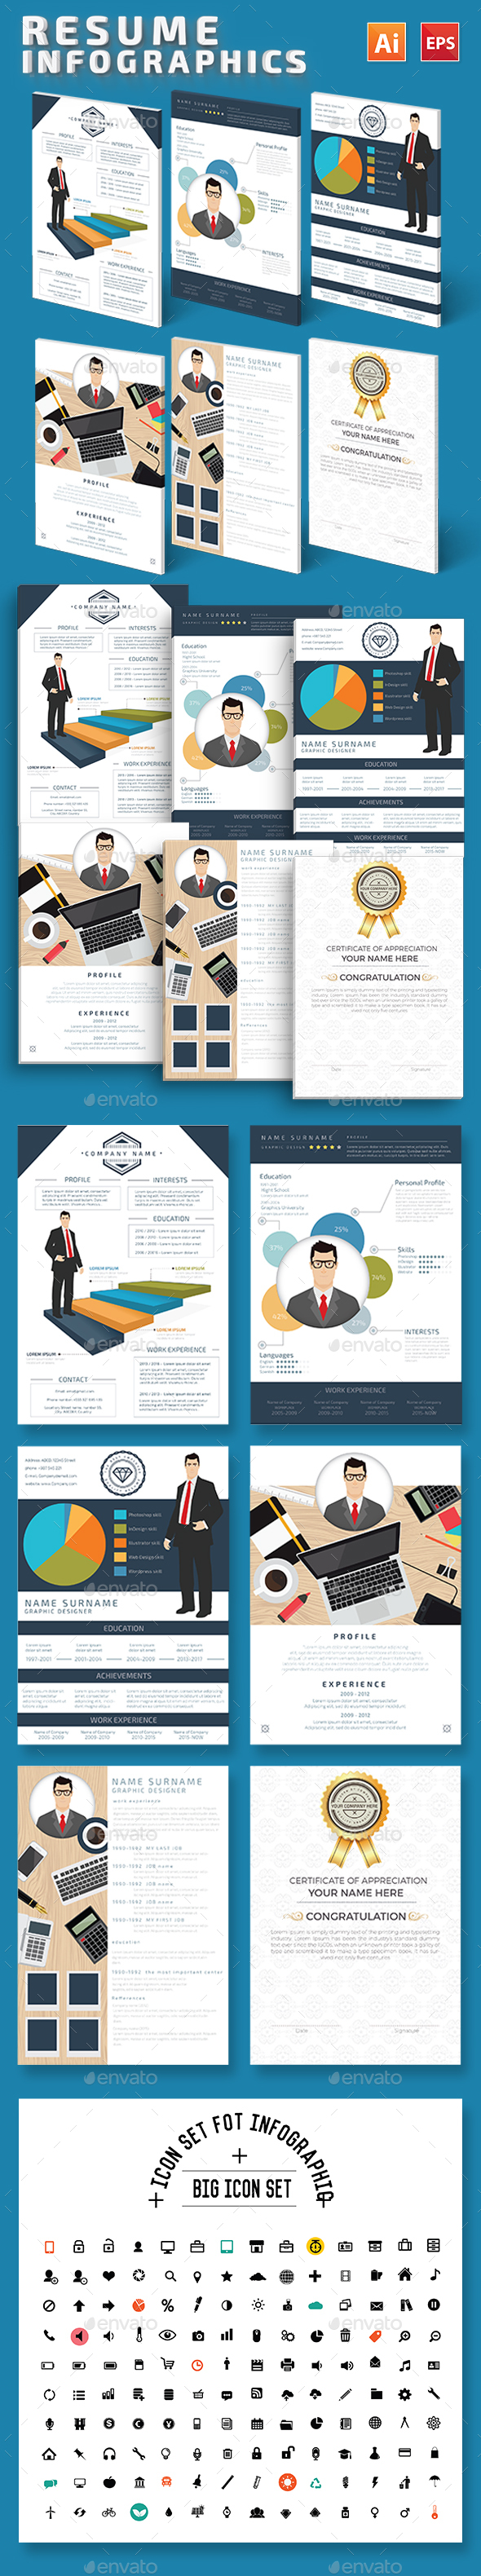 Resume Infographics Design